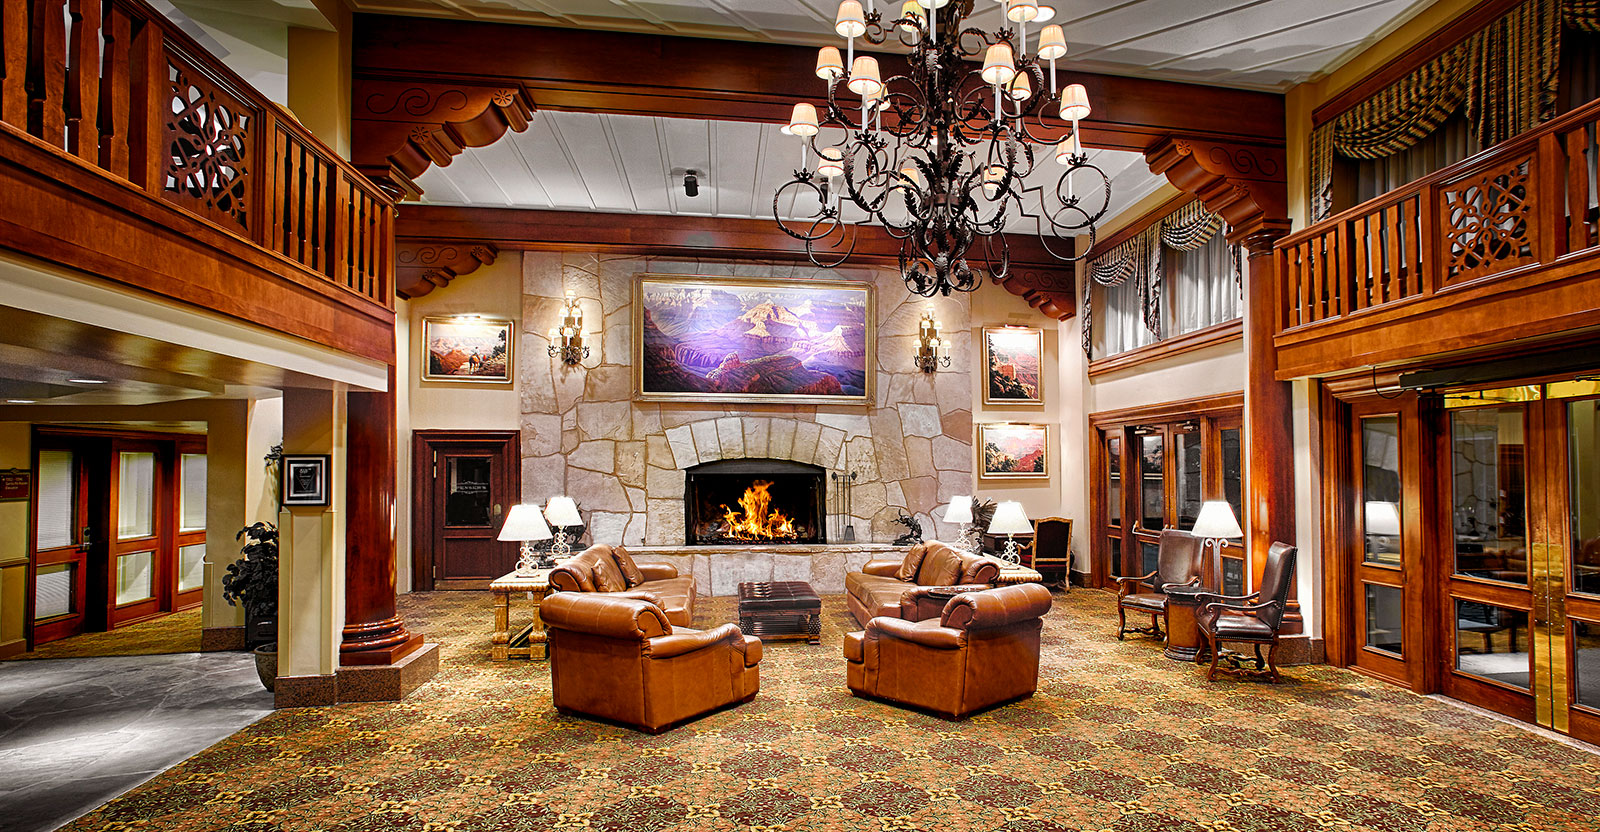 Grand Canyon Hotels Grand Canyon Railway Amp Hotel Arizona